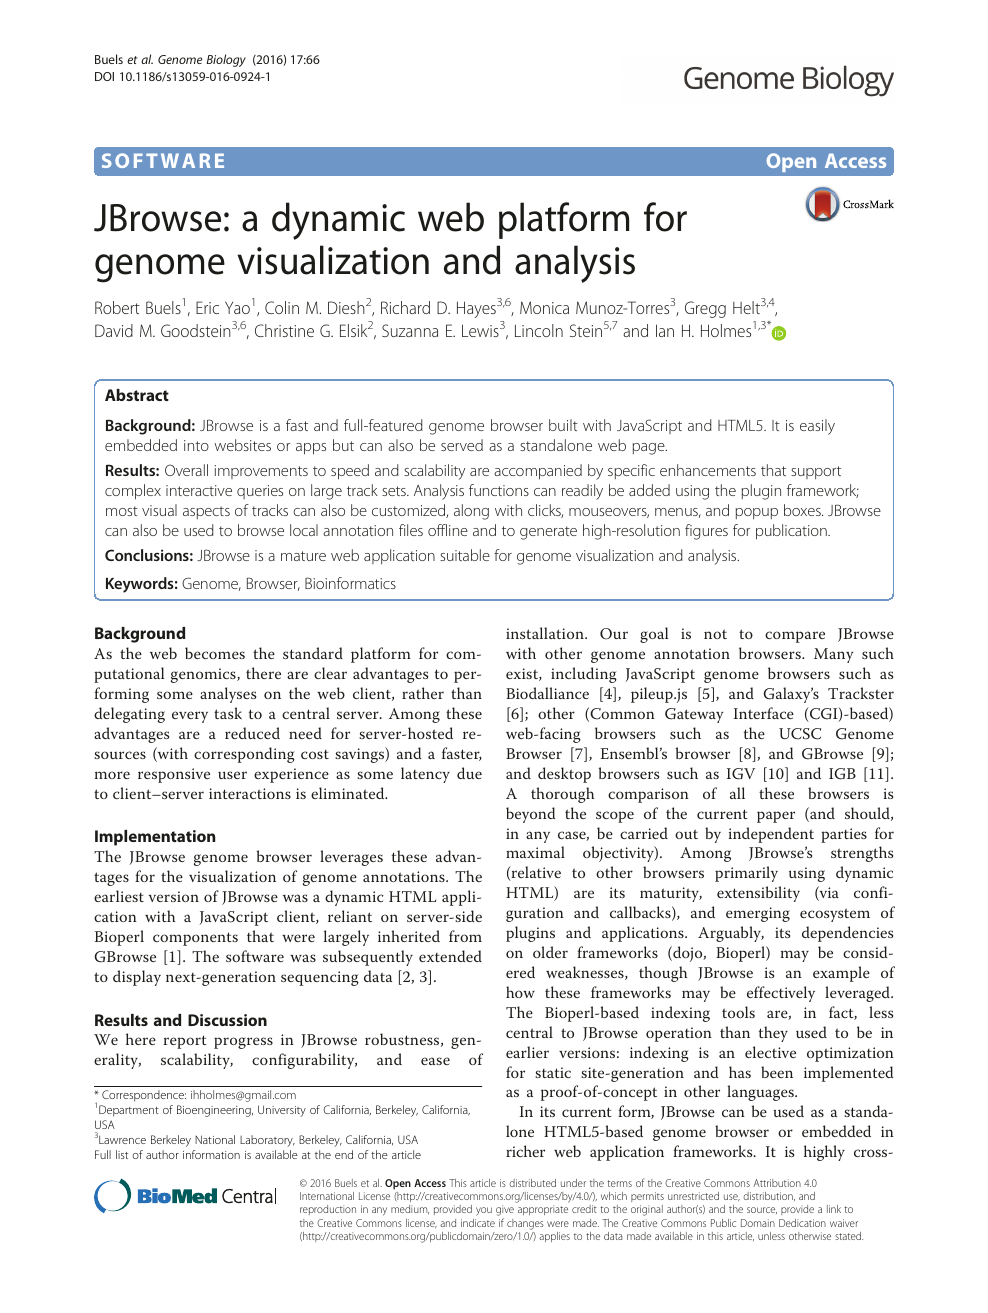 JBrowse: a dynamic web platform for genome visualization and